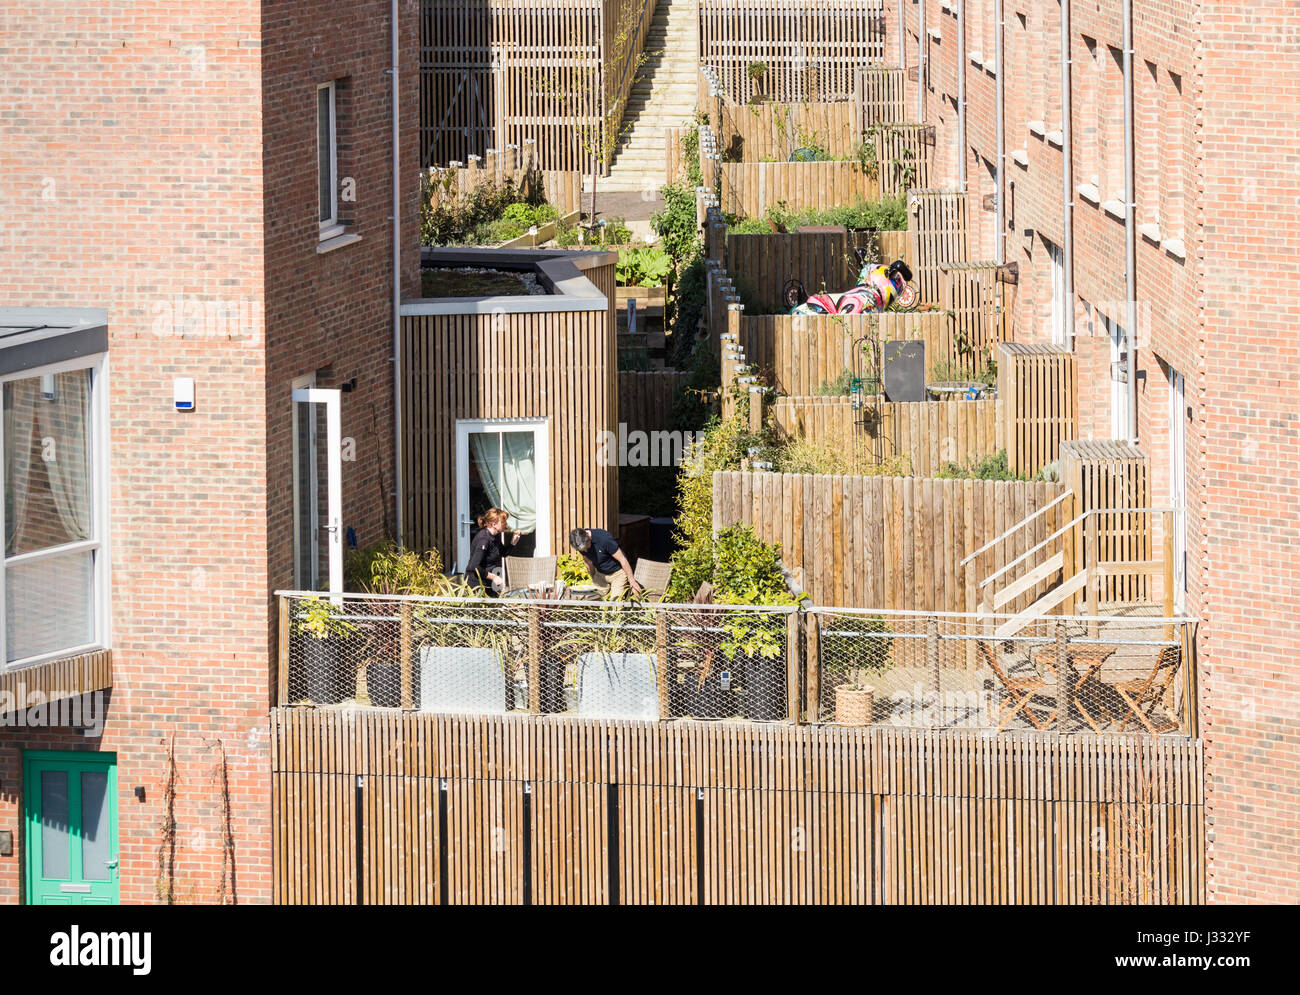 Ouseburn, Newcastle upon Tyne, UK. The Malings, new eco friendly housing development - Stock Image